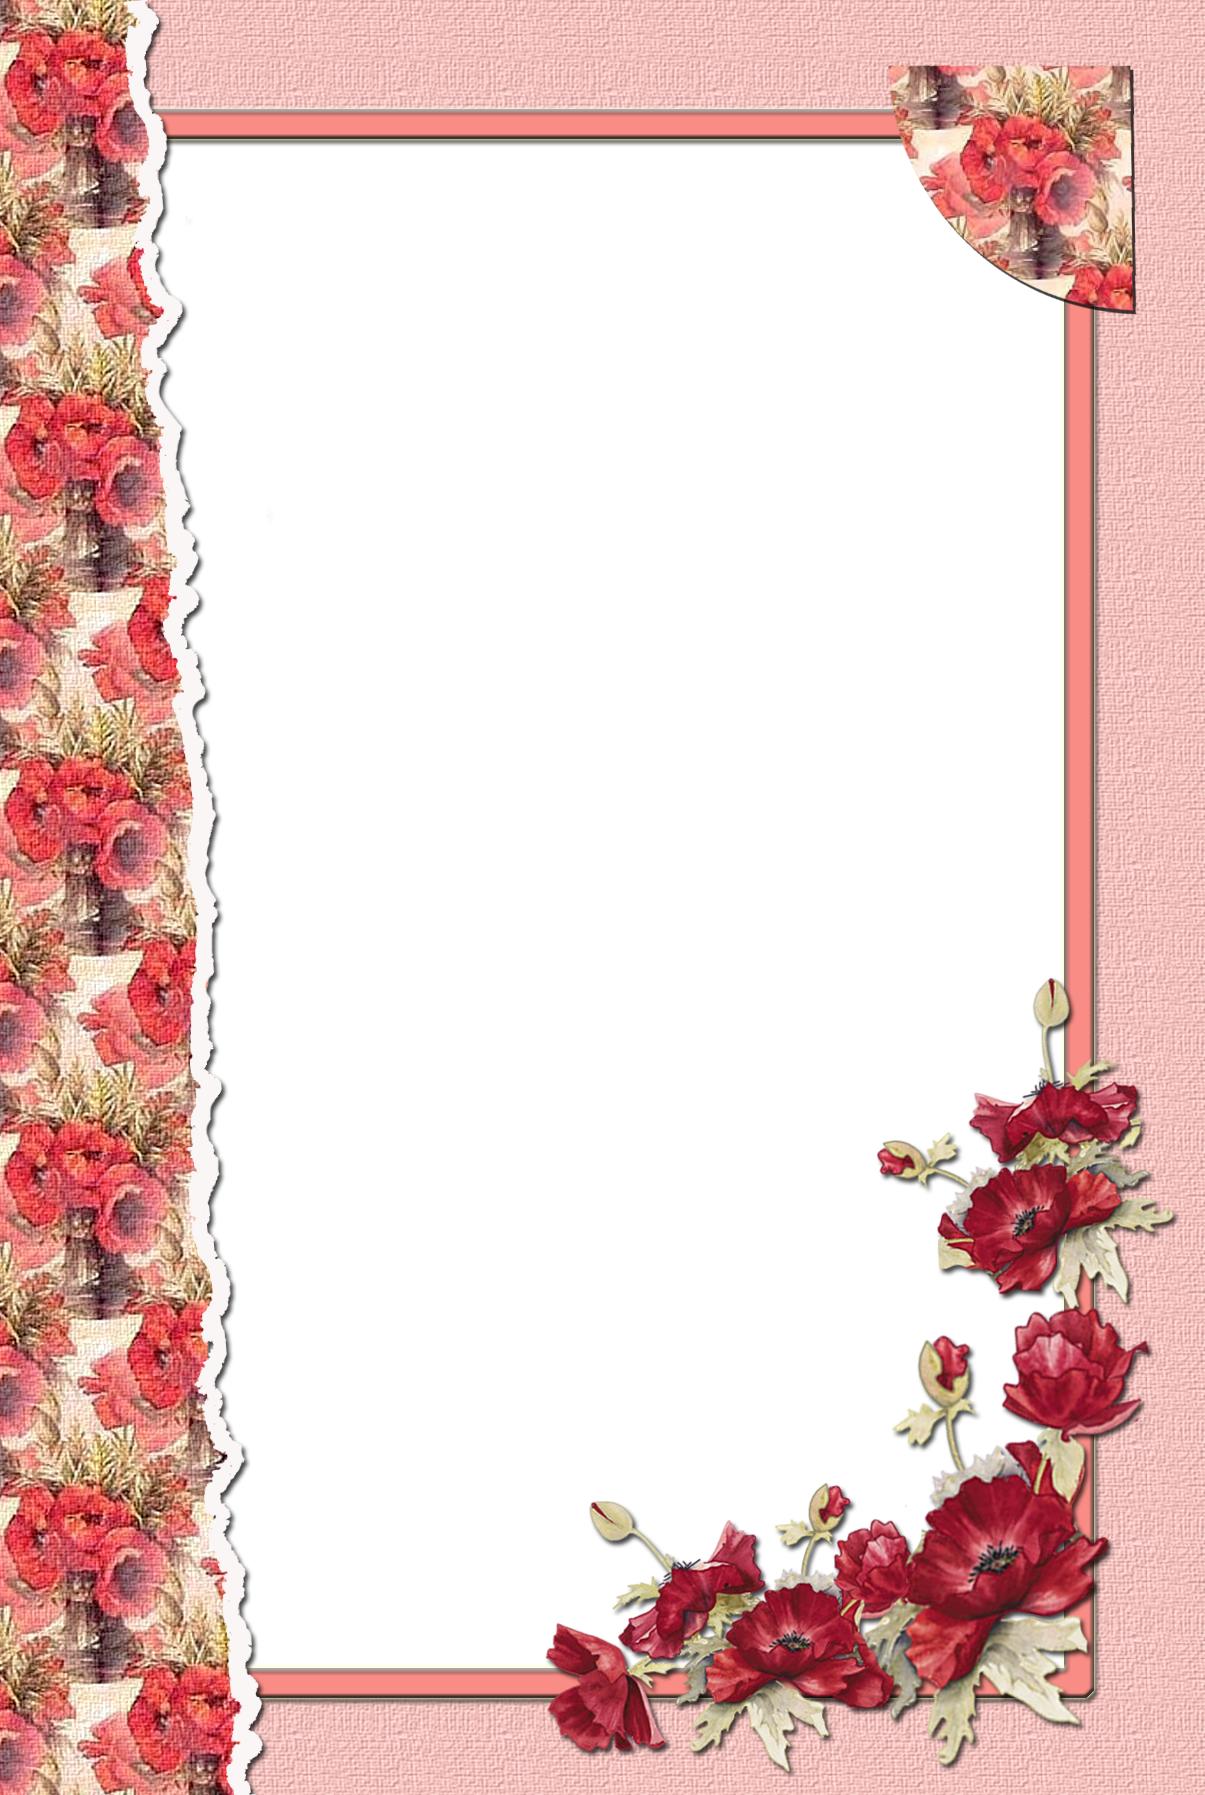 Gif clipart images of pink delicate flower borders svg library download Transparent Flower Red Frame | Frames and Borders | Transparent ... svg library download